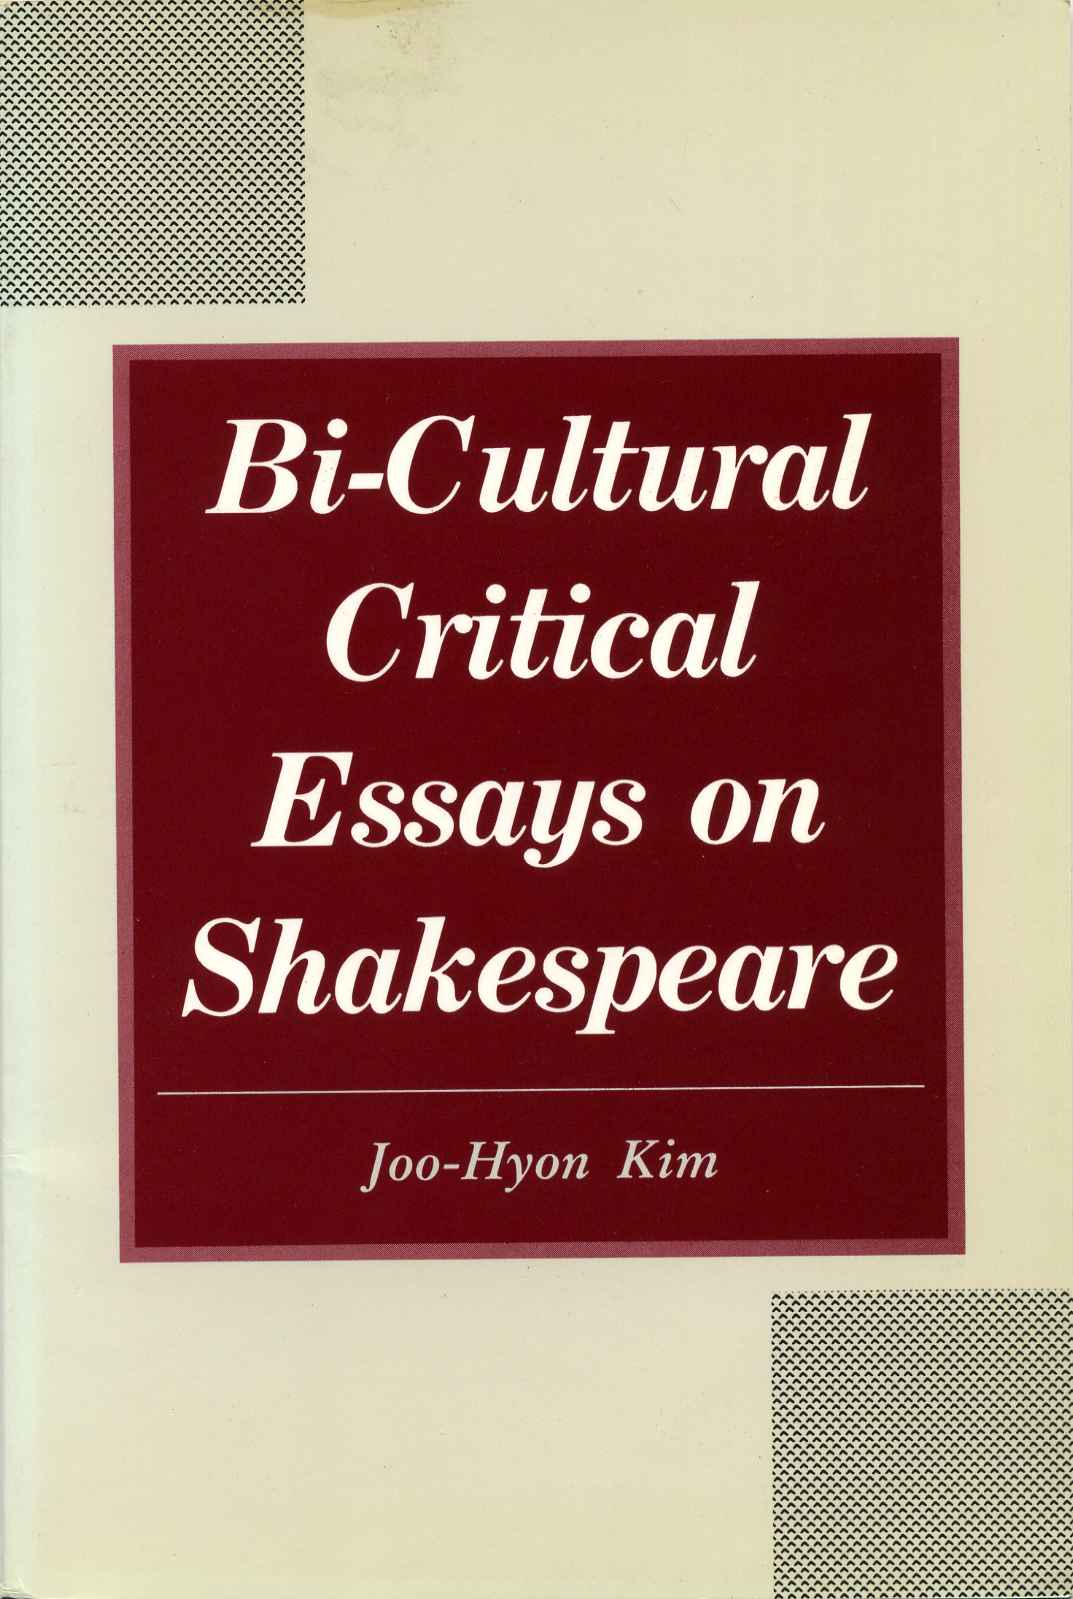 Global Warming Essay In English Bicultural Critical Essays On Shakespeare With A Letter Handwritten And  Signed By Kim Joohyon  Joohyon Kim  Reprint Edition What Is The Thesis Statement In The Essay also English Is My Second Language Essay Bicultural Critical Essays On Shakespeare With A Letter  Argumentative Essay High School